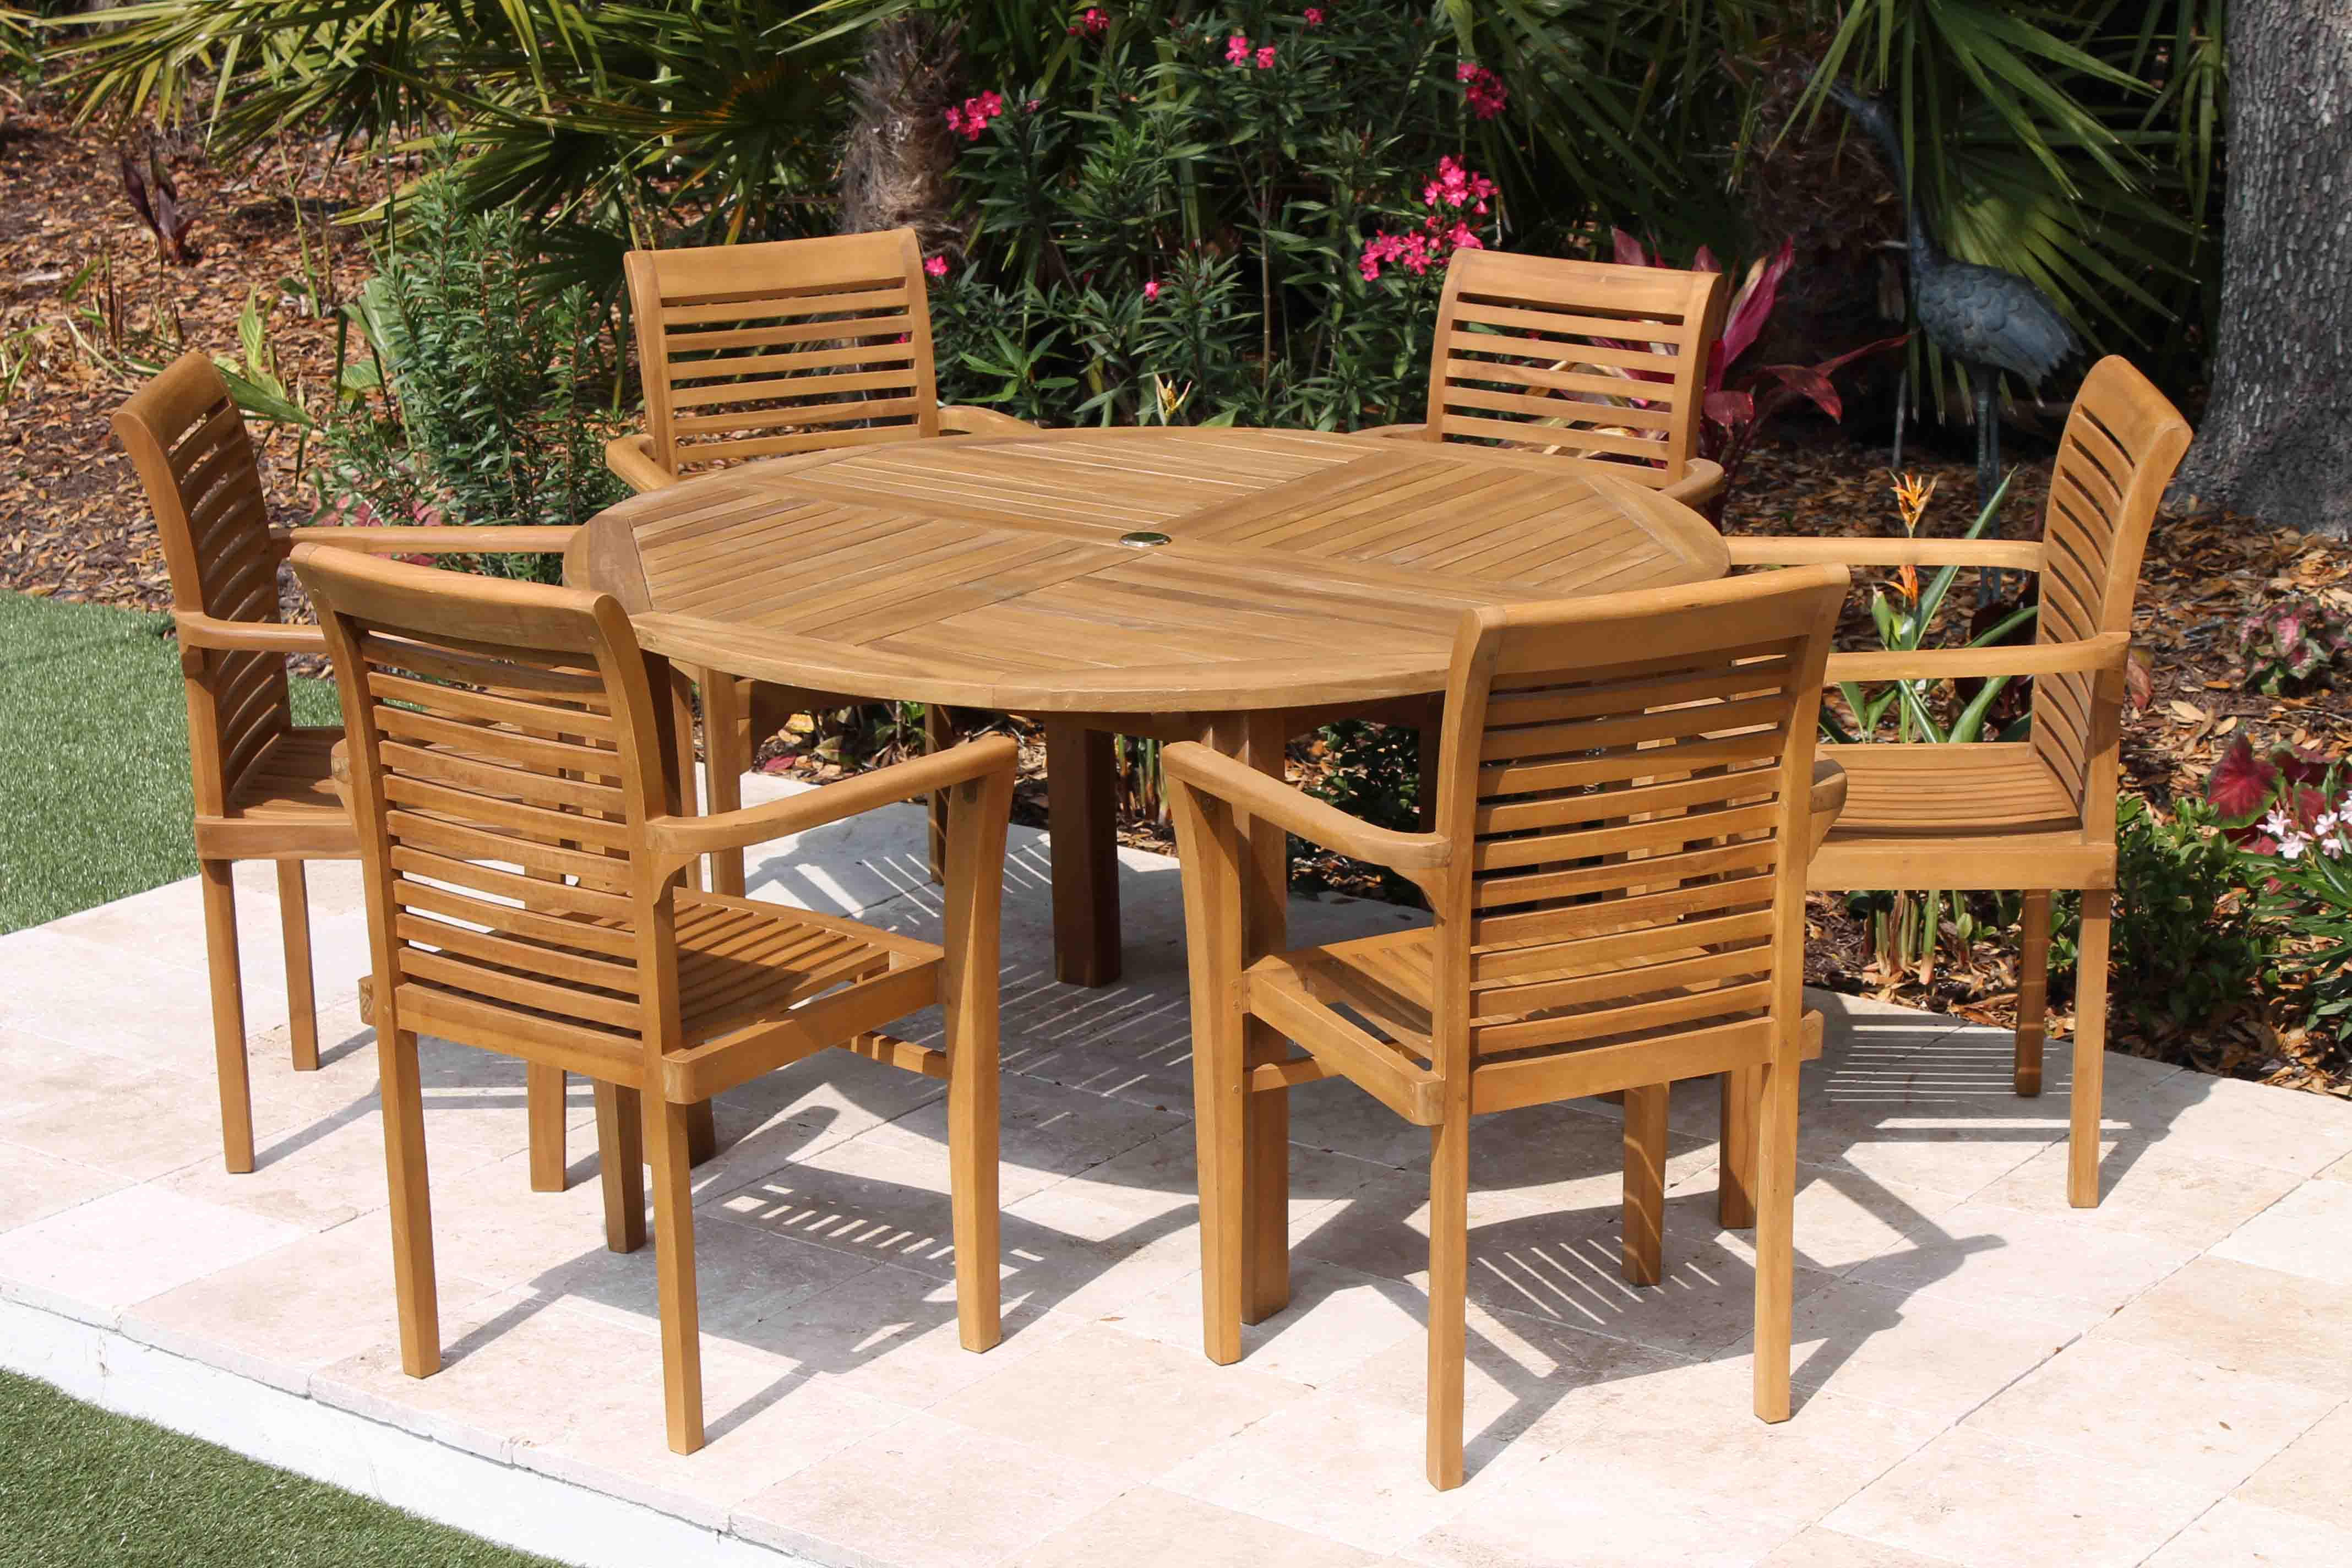 Teak Chair sale 56in round table & 6 atlantic chair teak set | oceanic teak